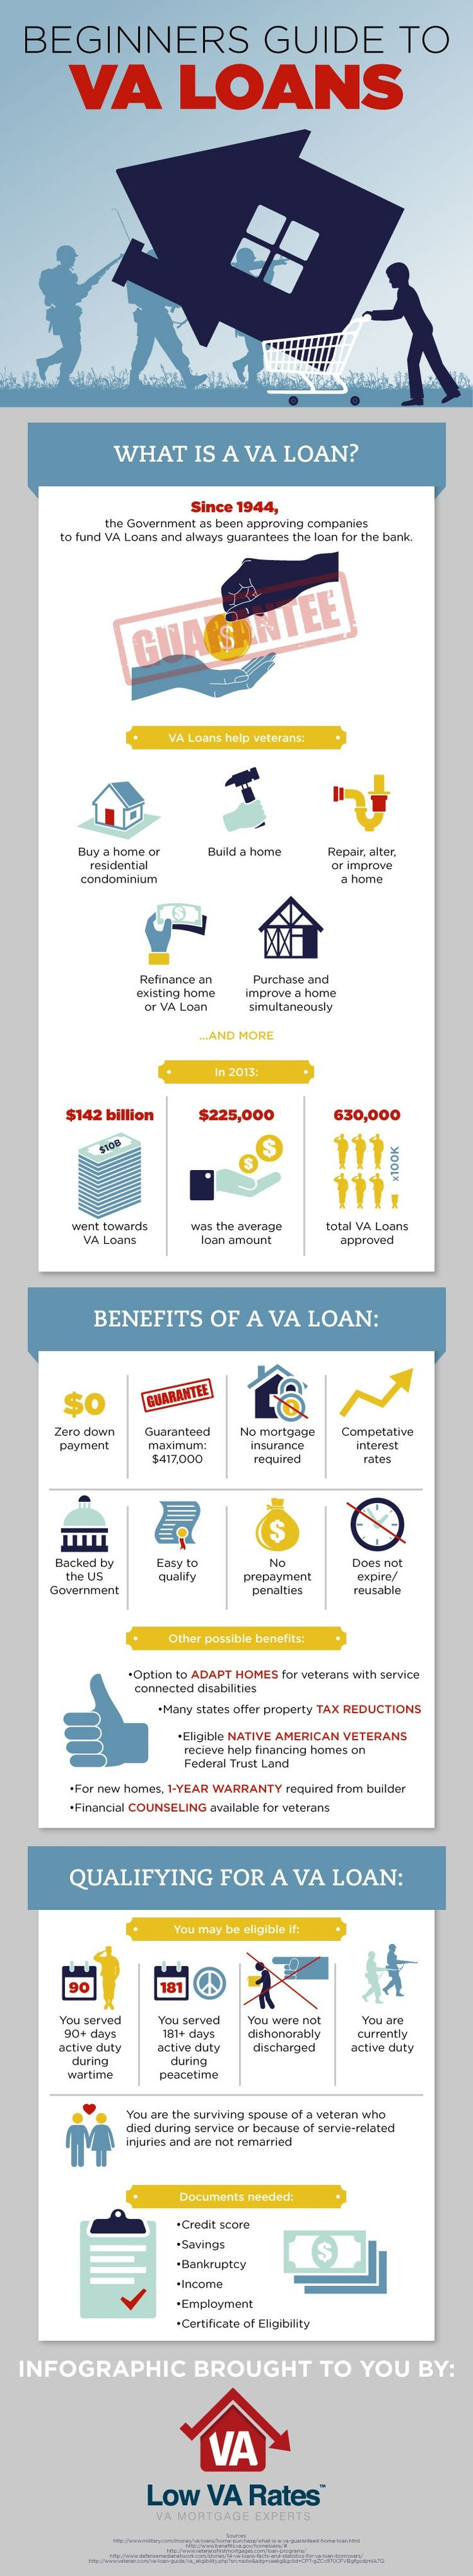 The Beginners Guide to VA Loans by LowVARates.com #veterans